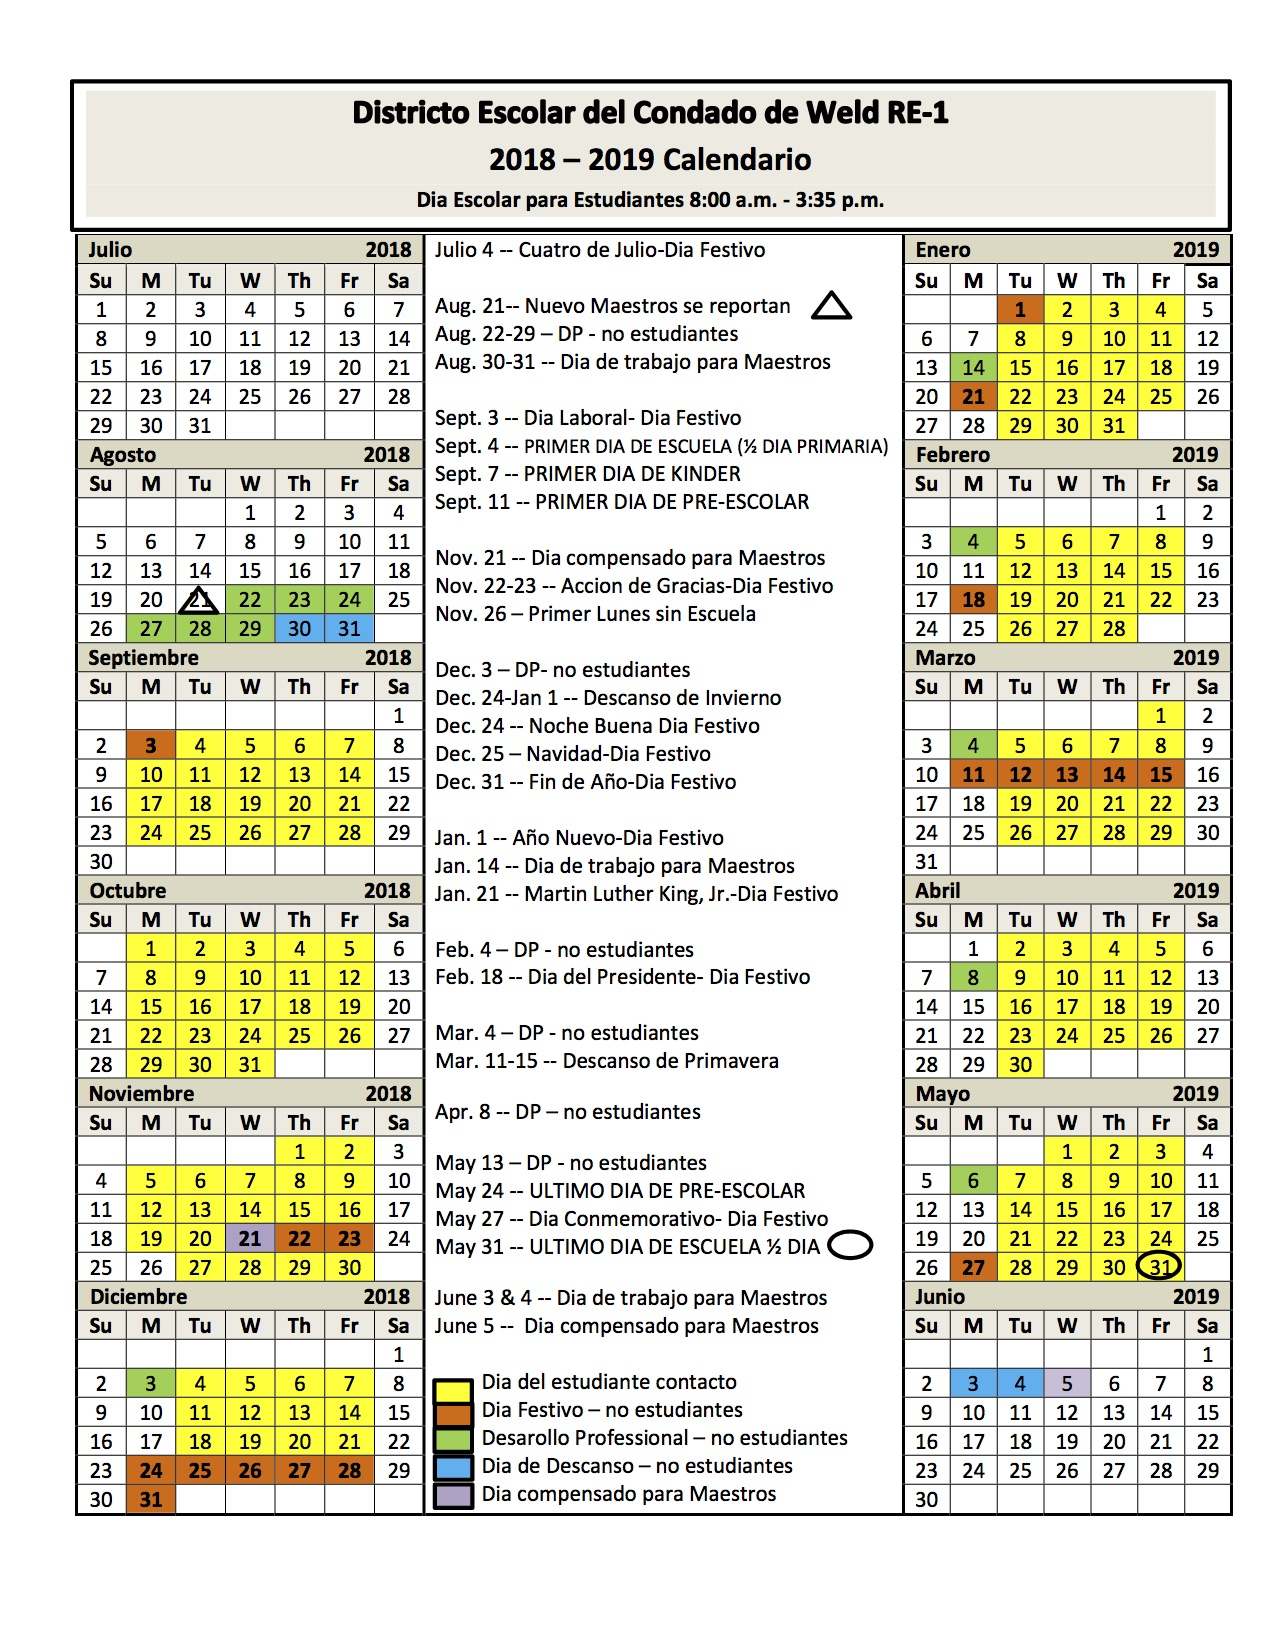 2018/19 School Year Calendar  (Spanish)